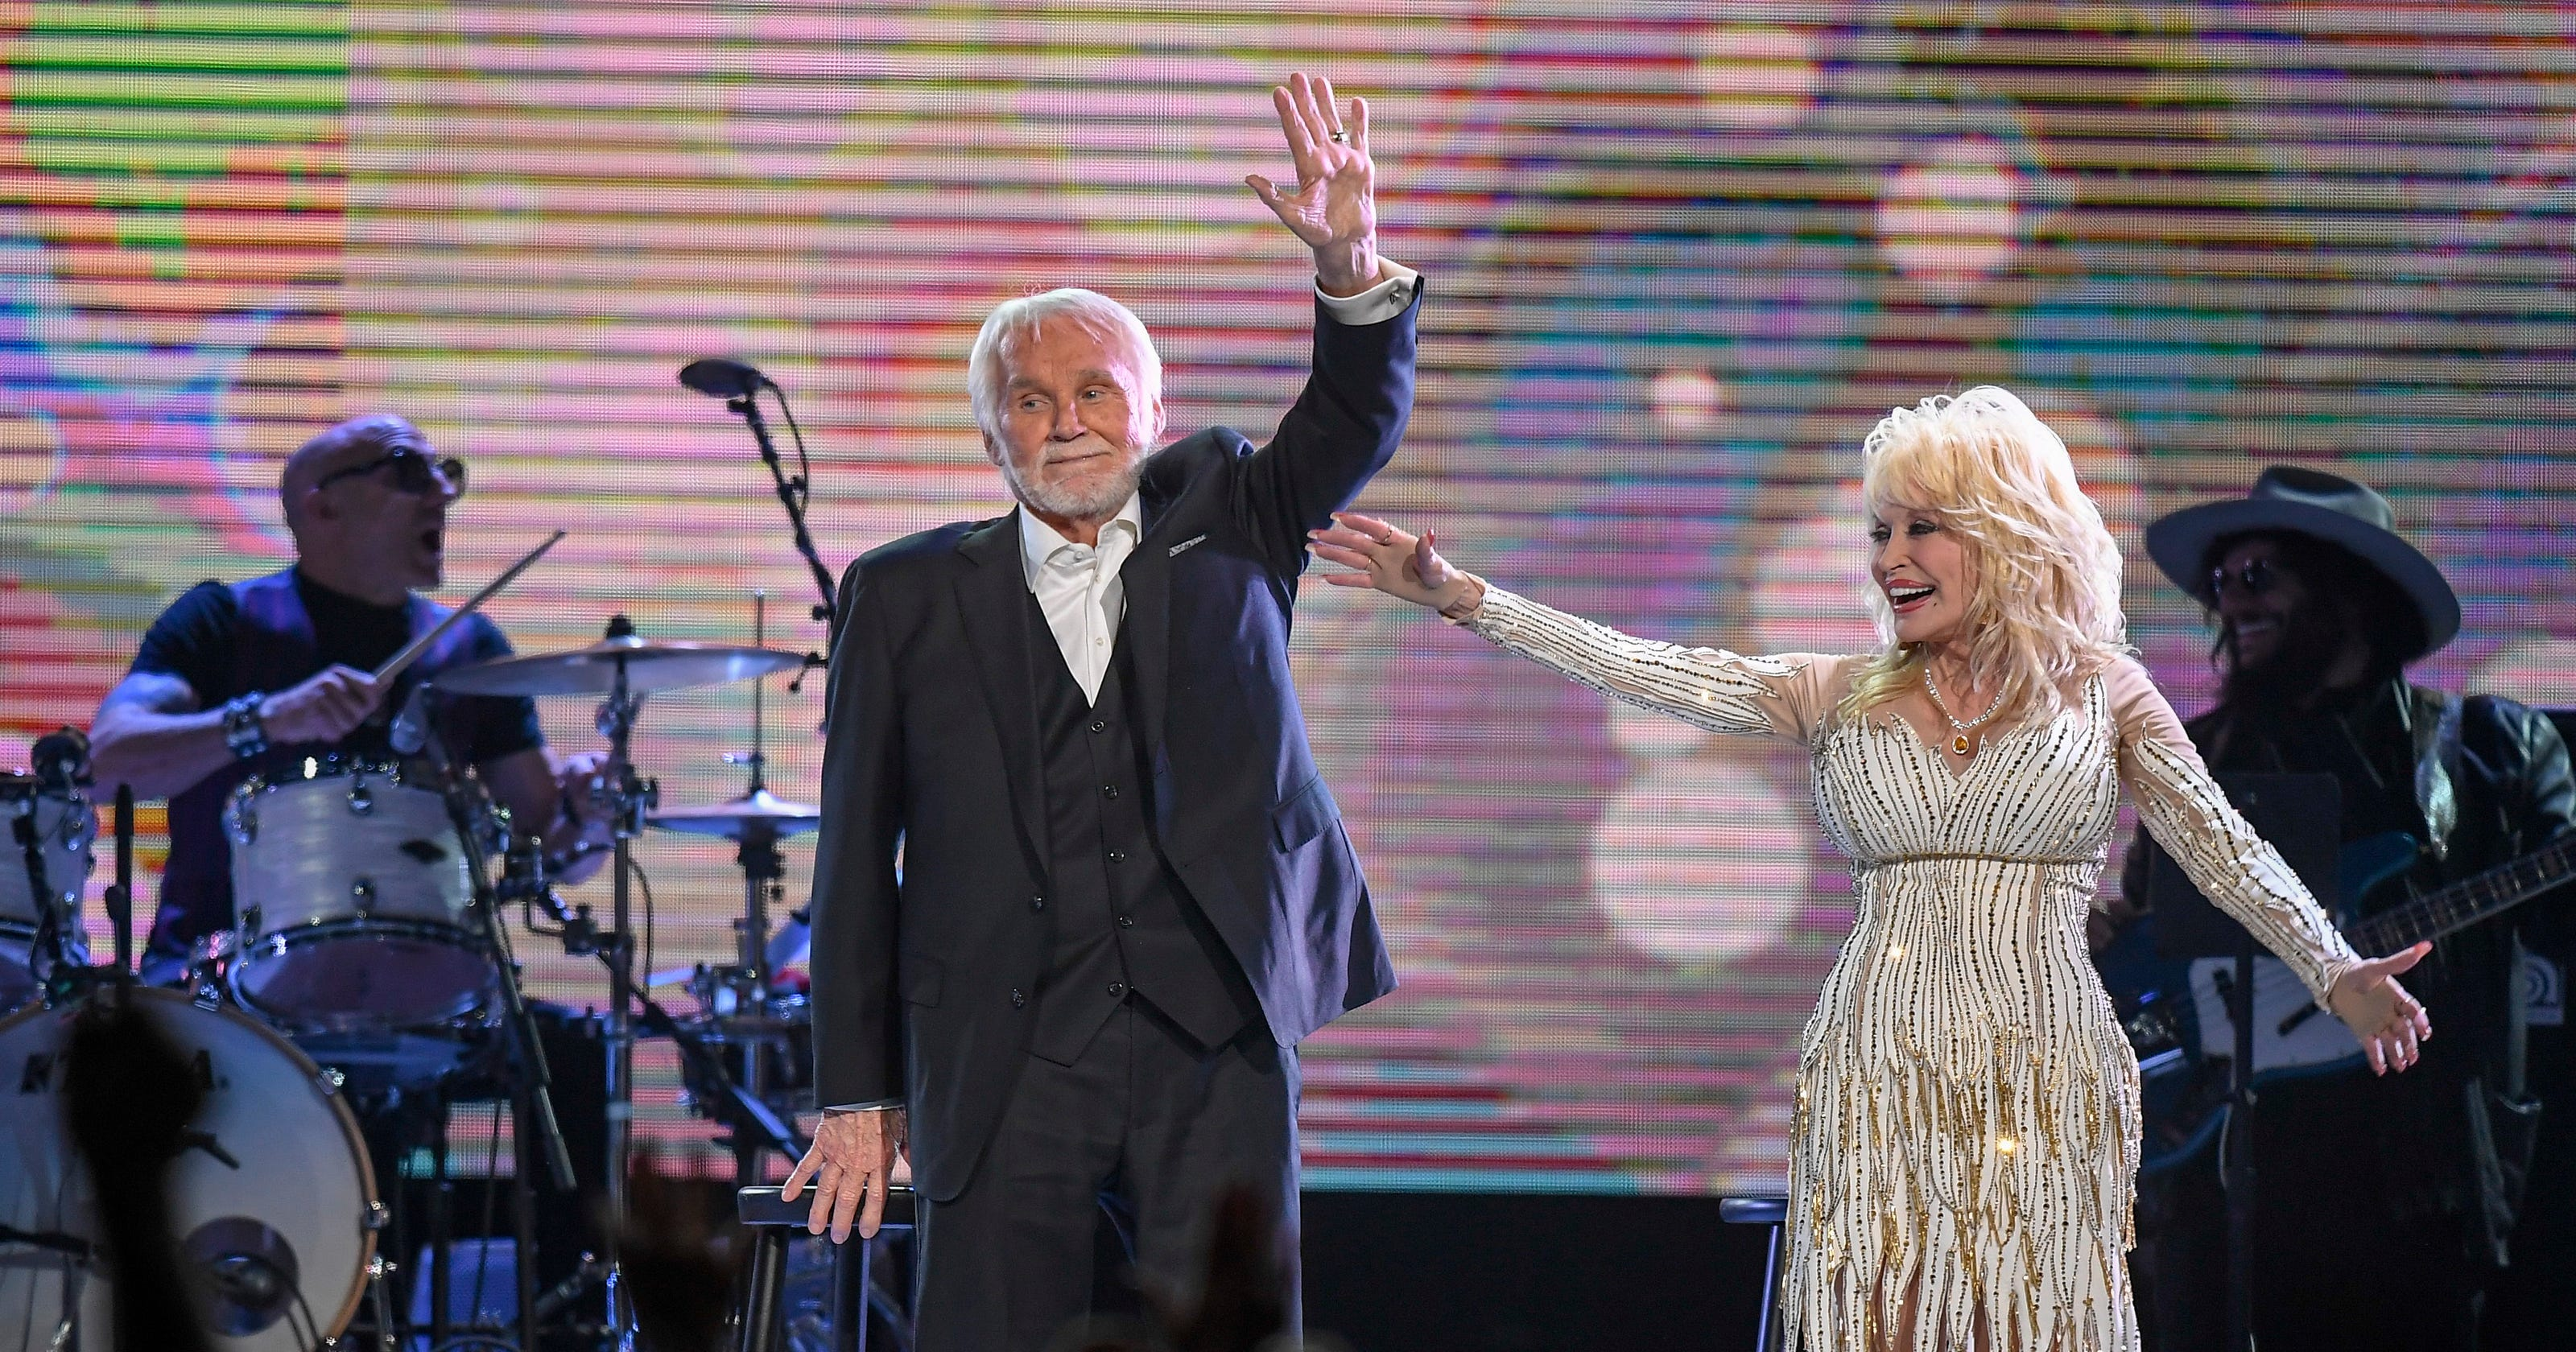 Kenny Rogers farewell show: \'The Gambler,\' Dolly Parton drop the mic